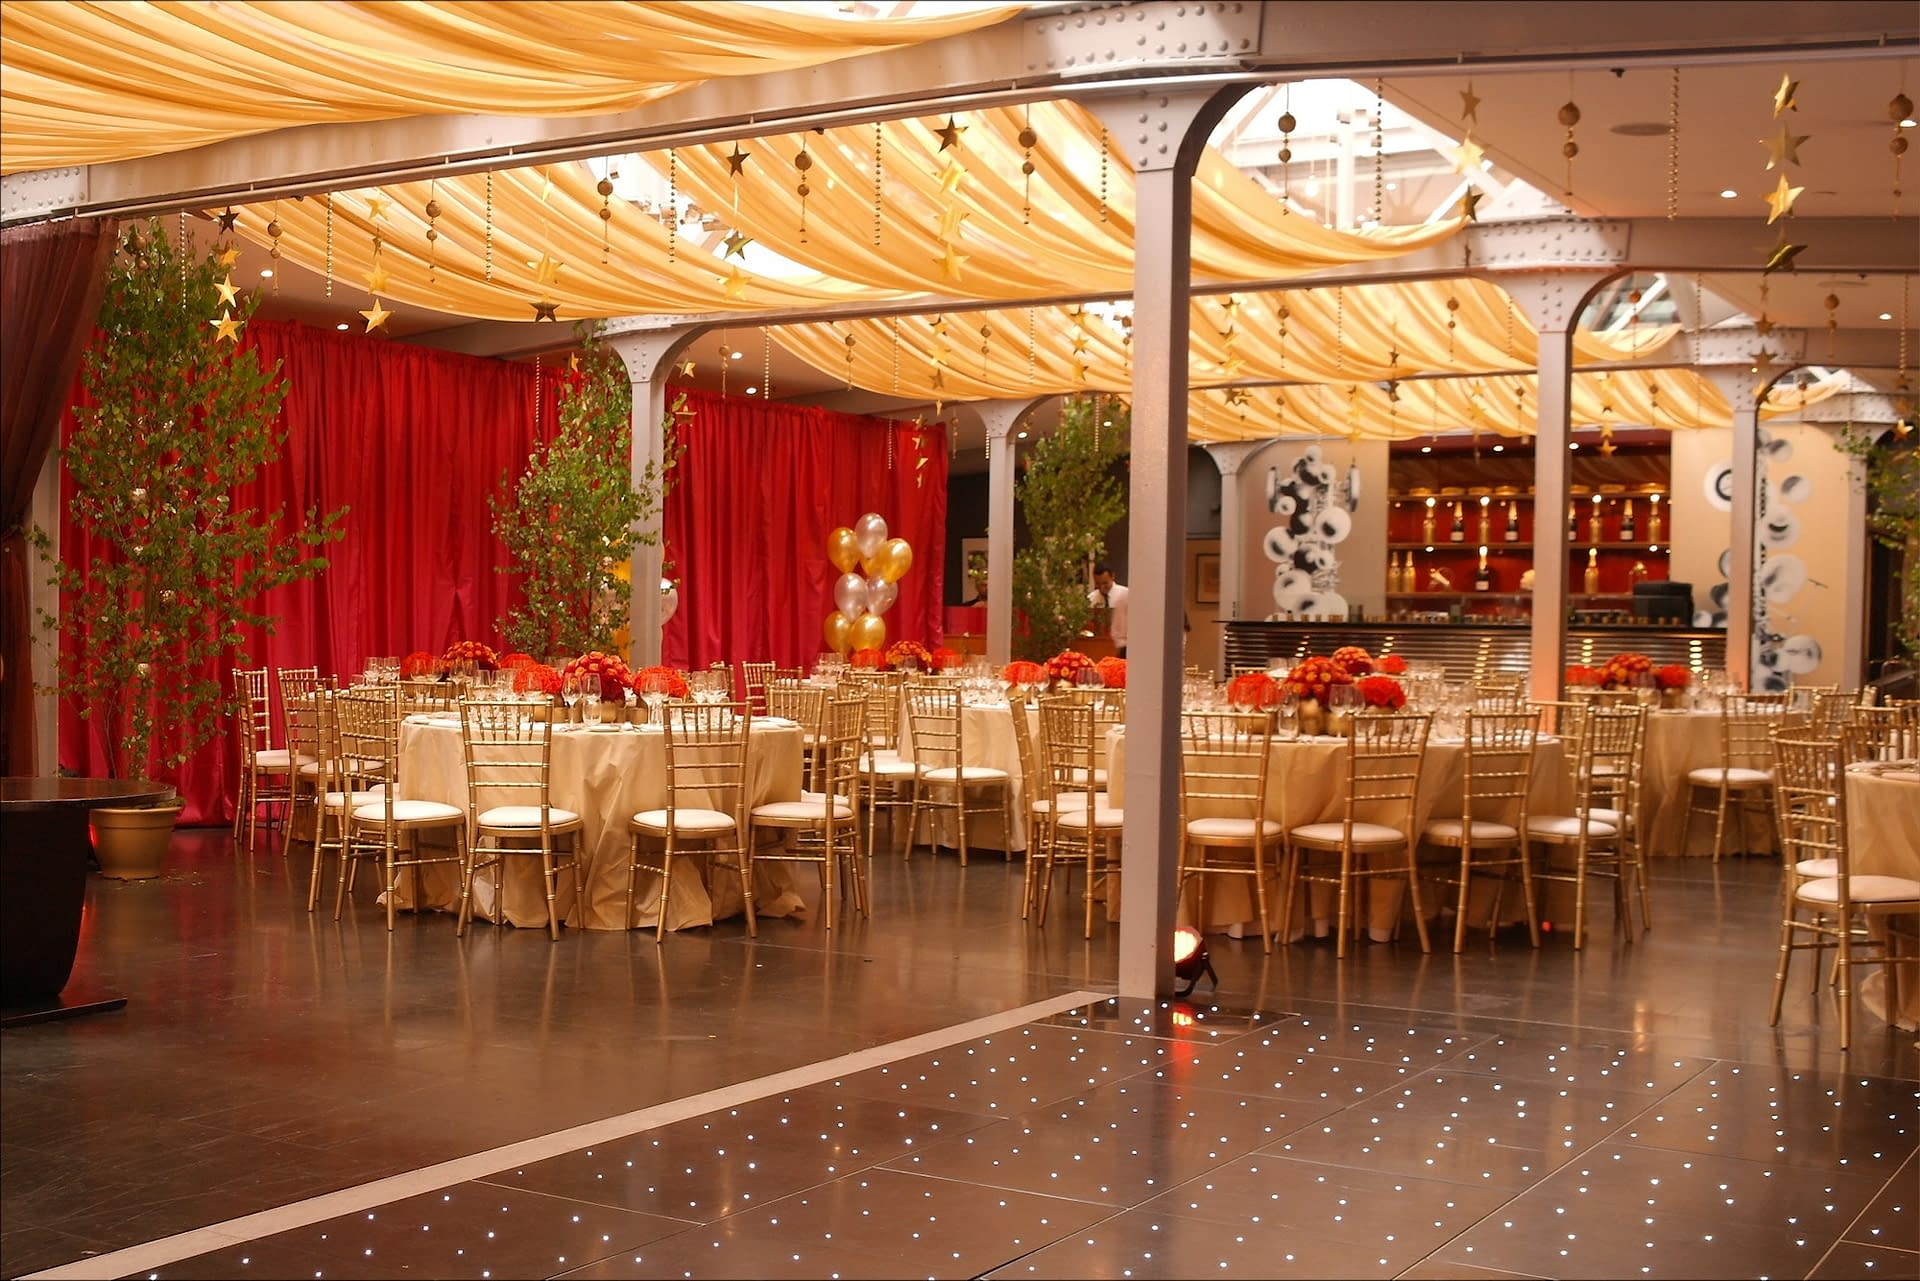 Gold ceiling drapes, birch trees with fairy lights, a starlit dance floor and warm mood lighting at The Bluebird Restaurant, UK party venue in Chelsea